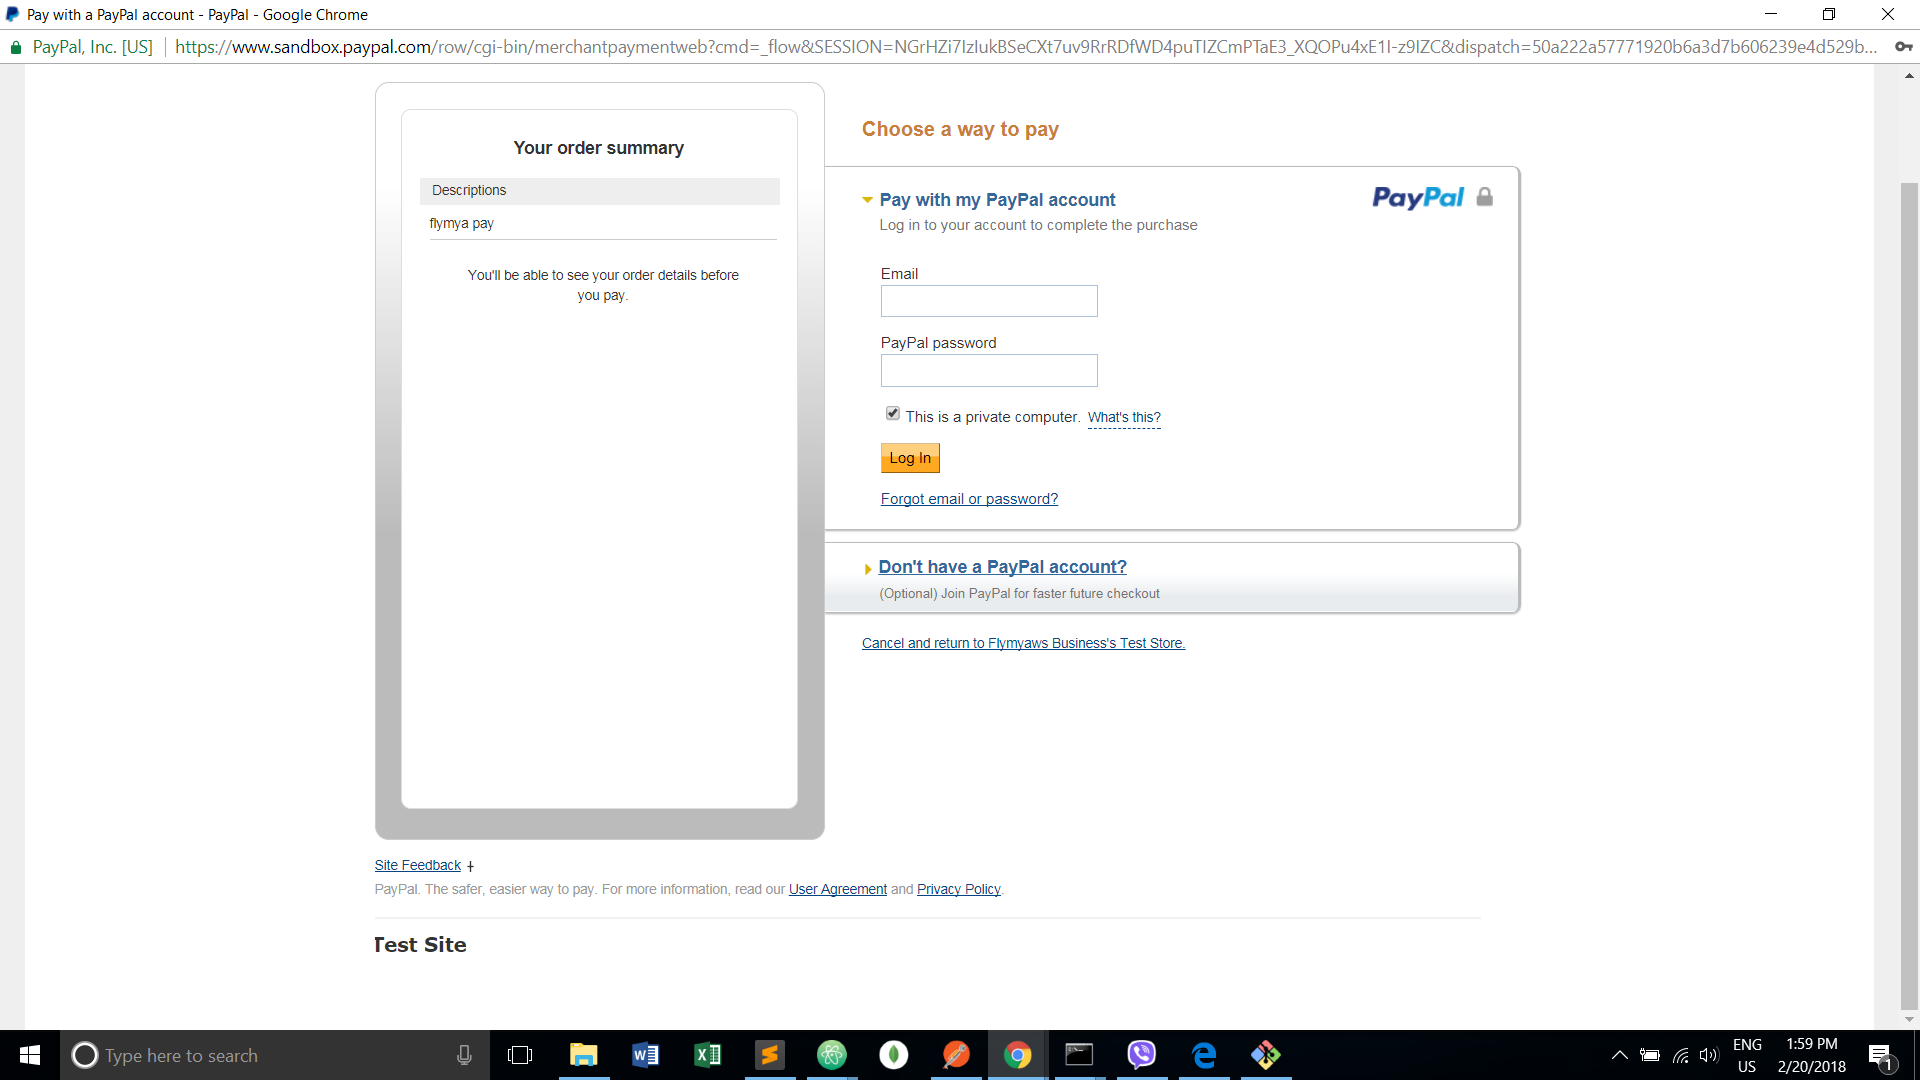 What is a paypal account To return money to aliexpress, the seller asks for my paypal account. How do I know it